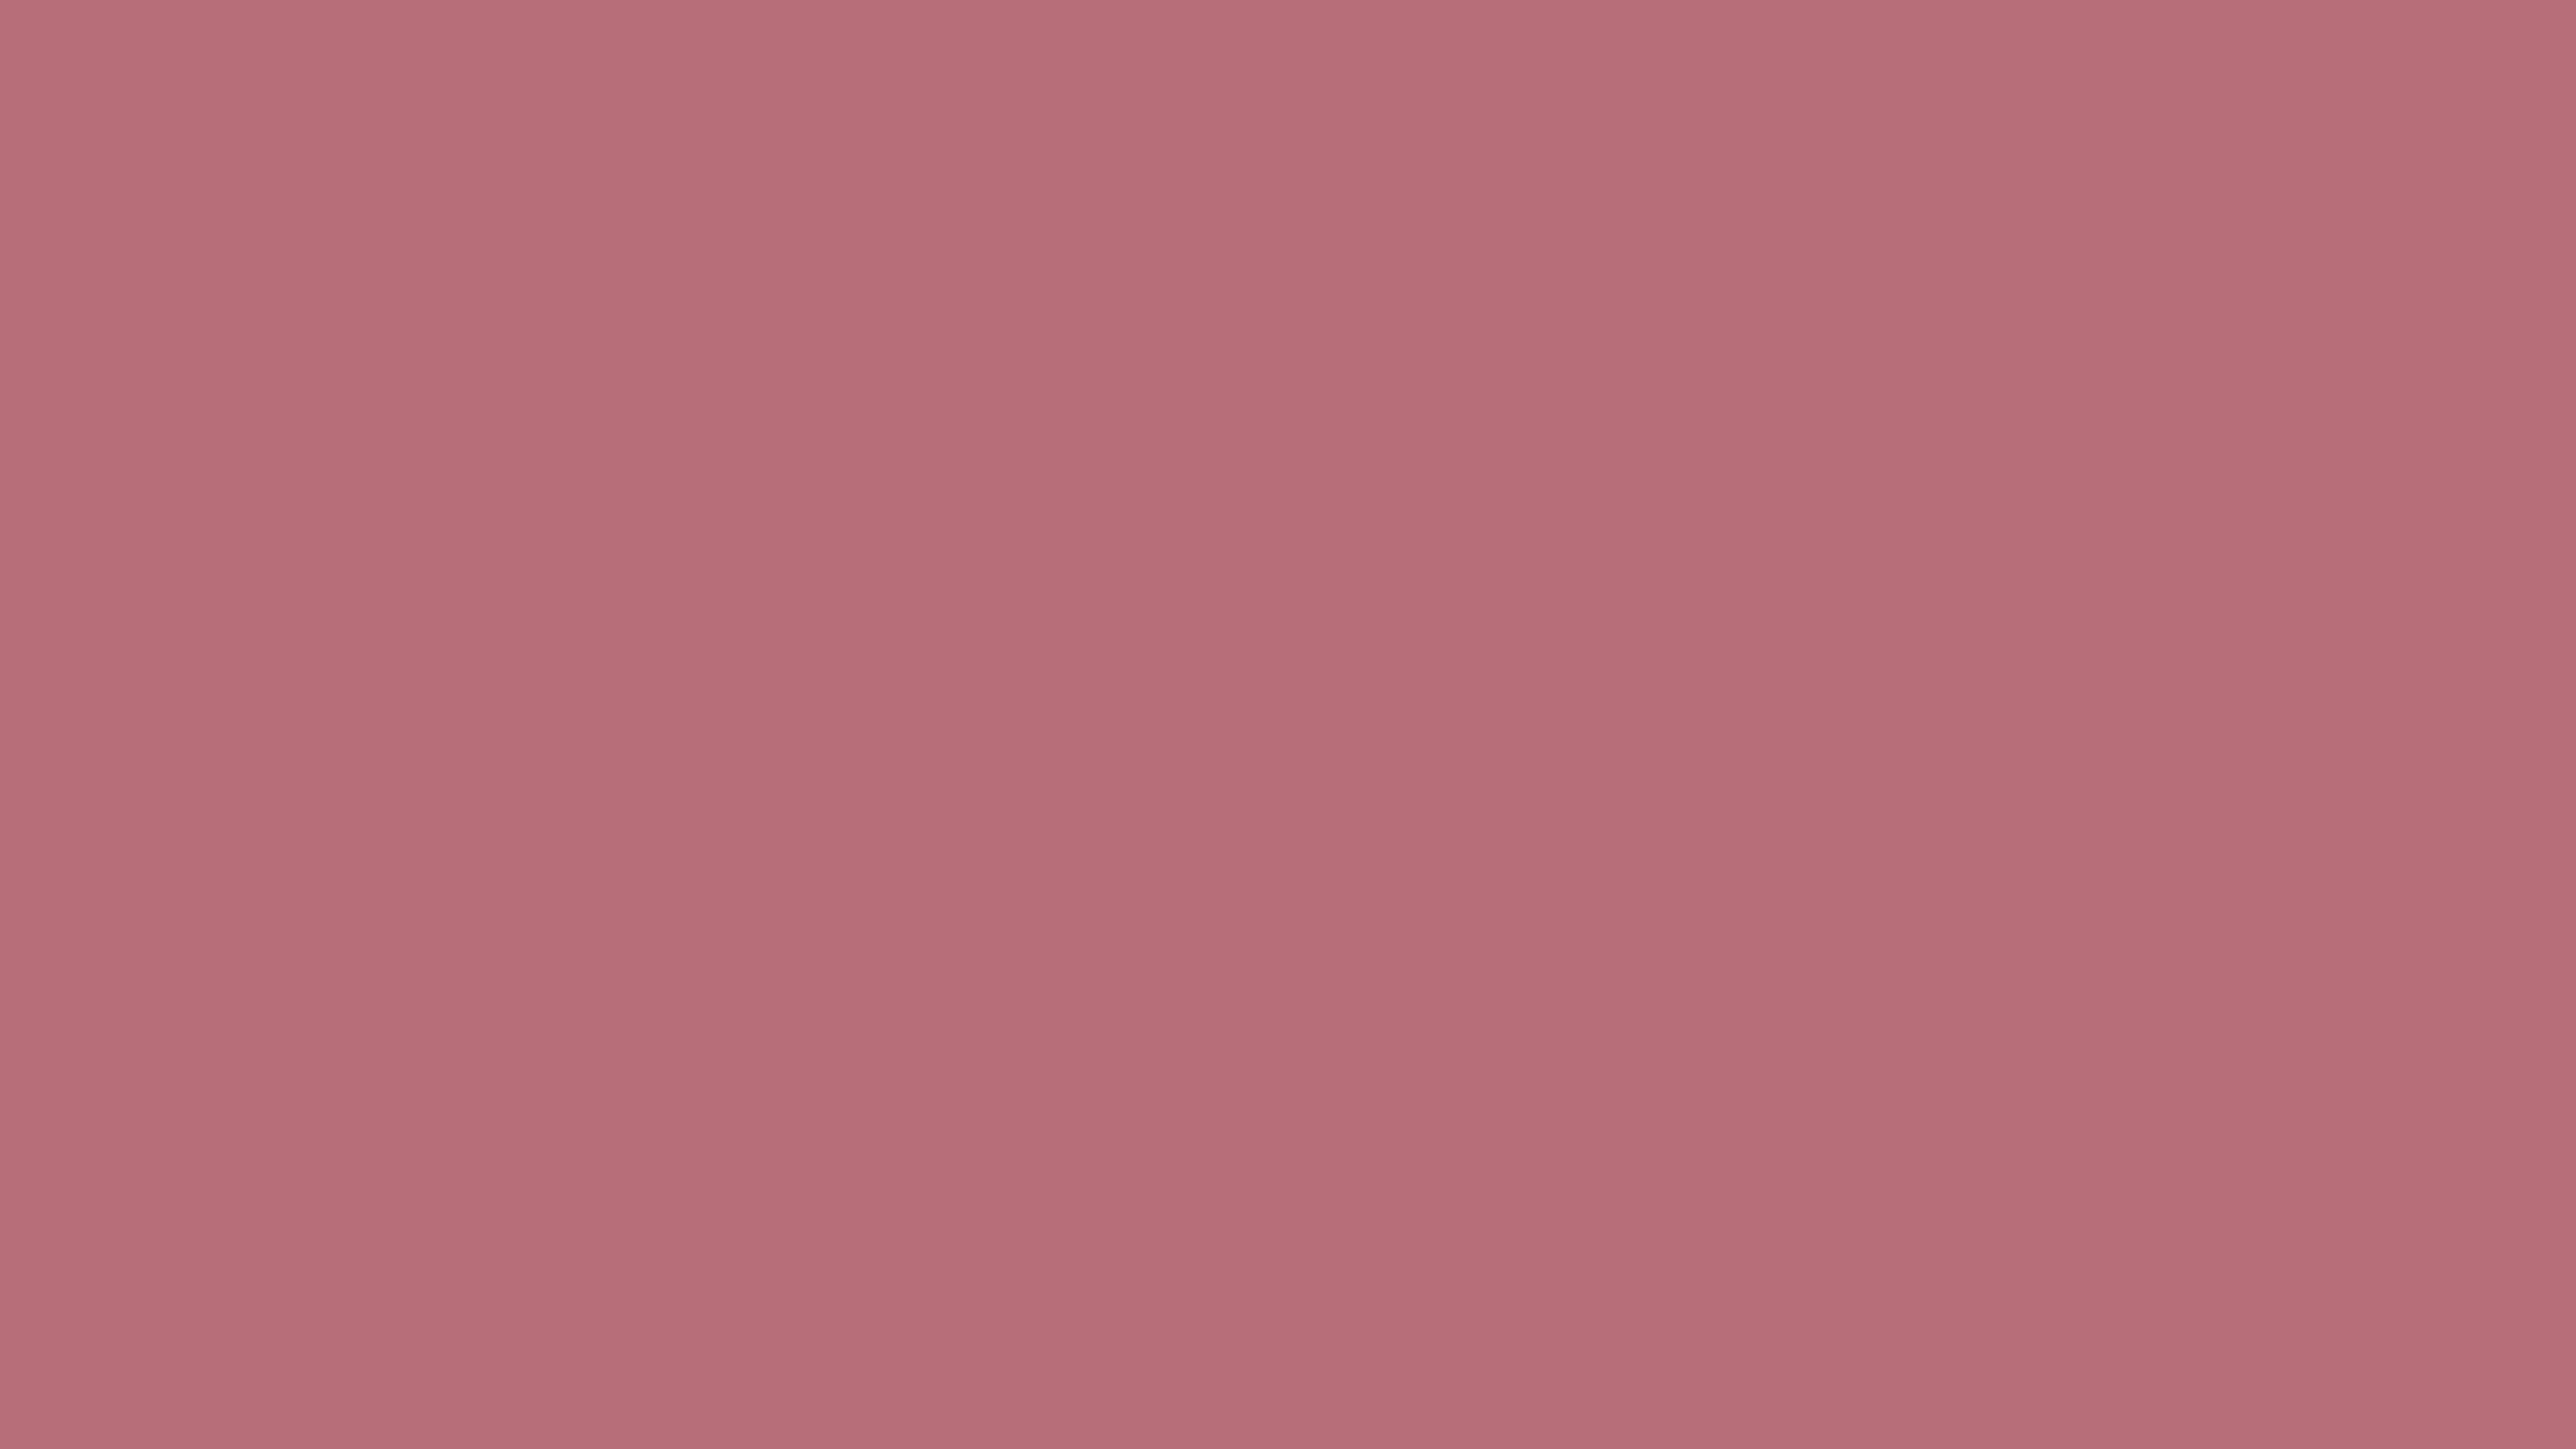 5120x2880 Rose Gold Solid Color Background